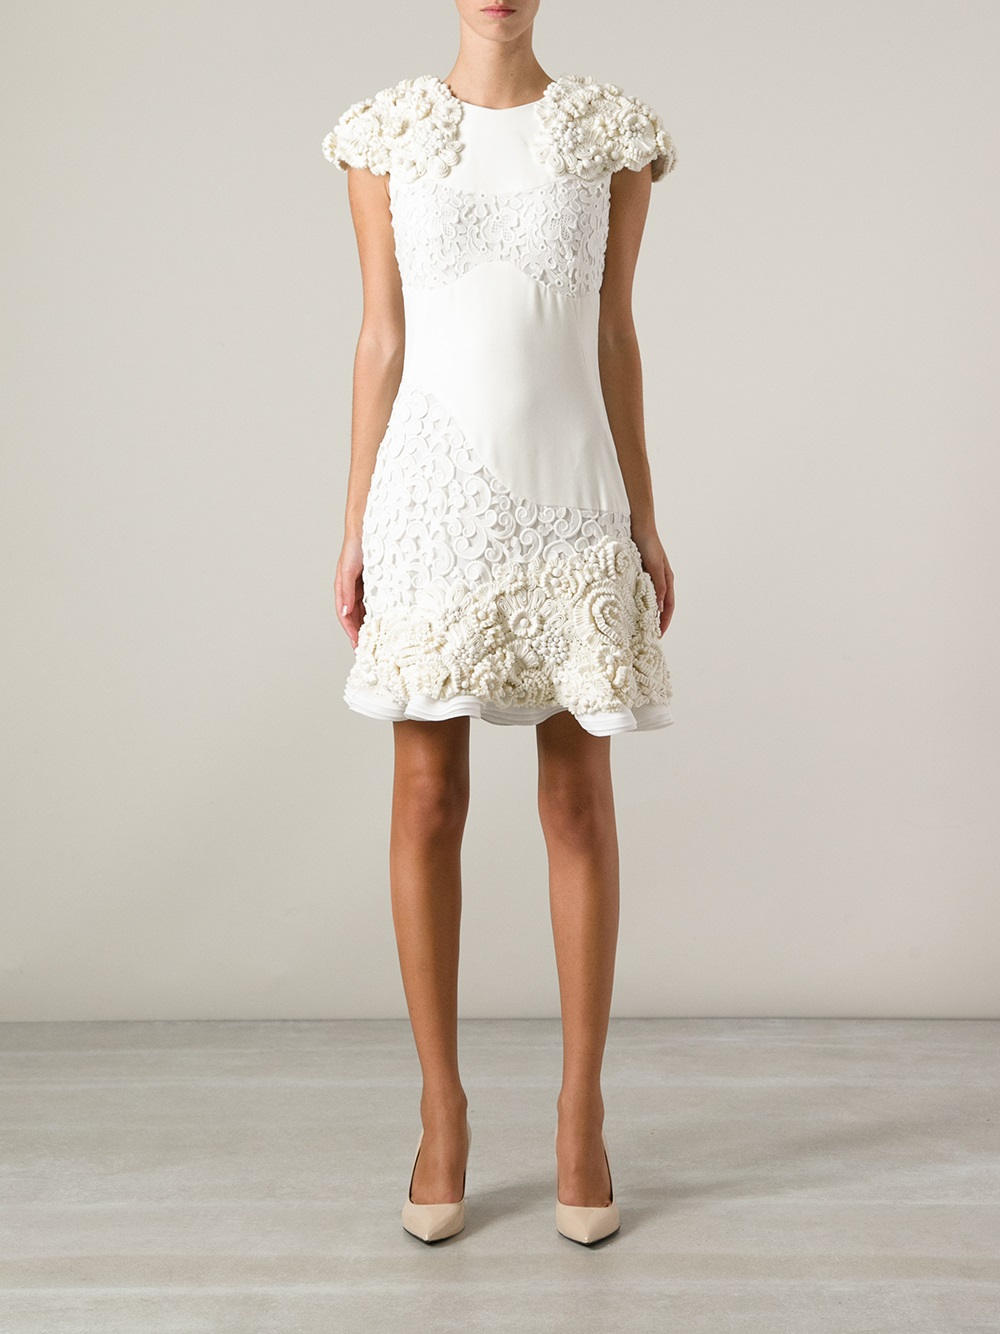 6bed9eb27c5 Alexander McQueen Floral Embellished Dress in White - Lyst